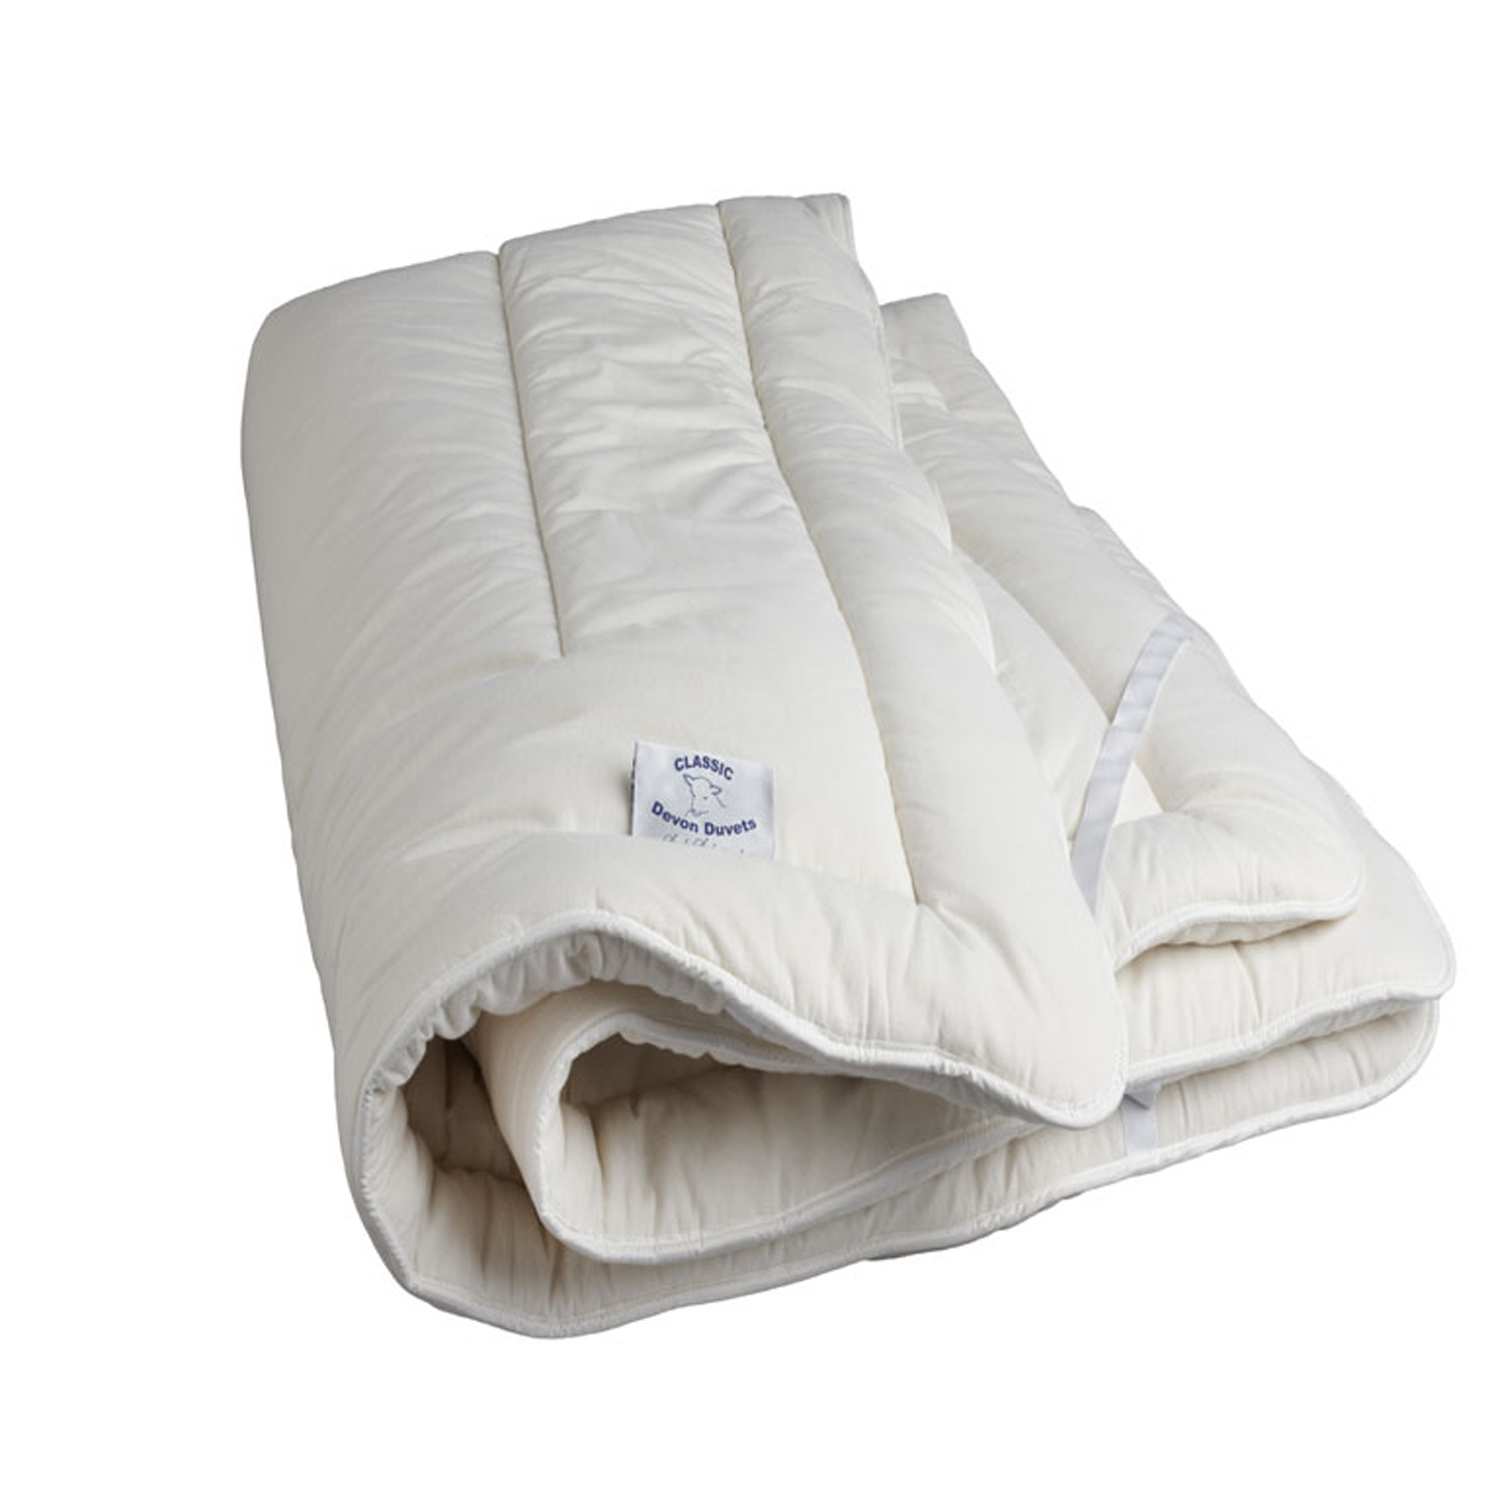 pillow in wool case medium cover standard image sleeper pure combine soft size uk filled mattress cosy with cotton